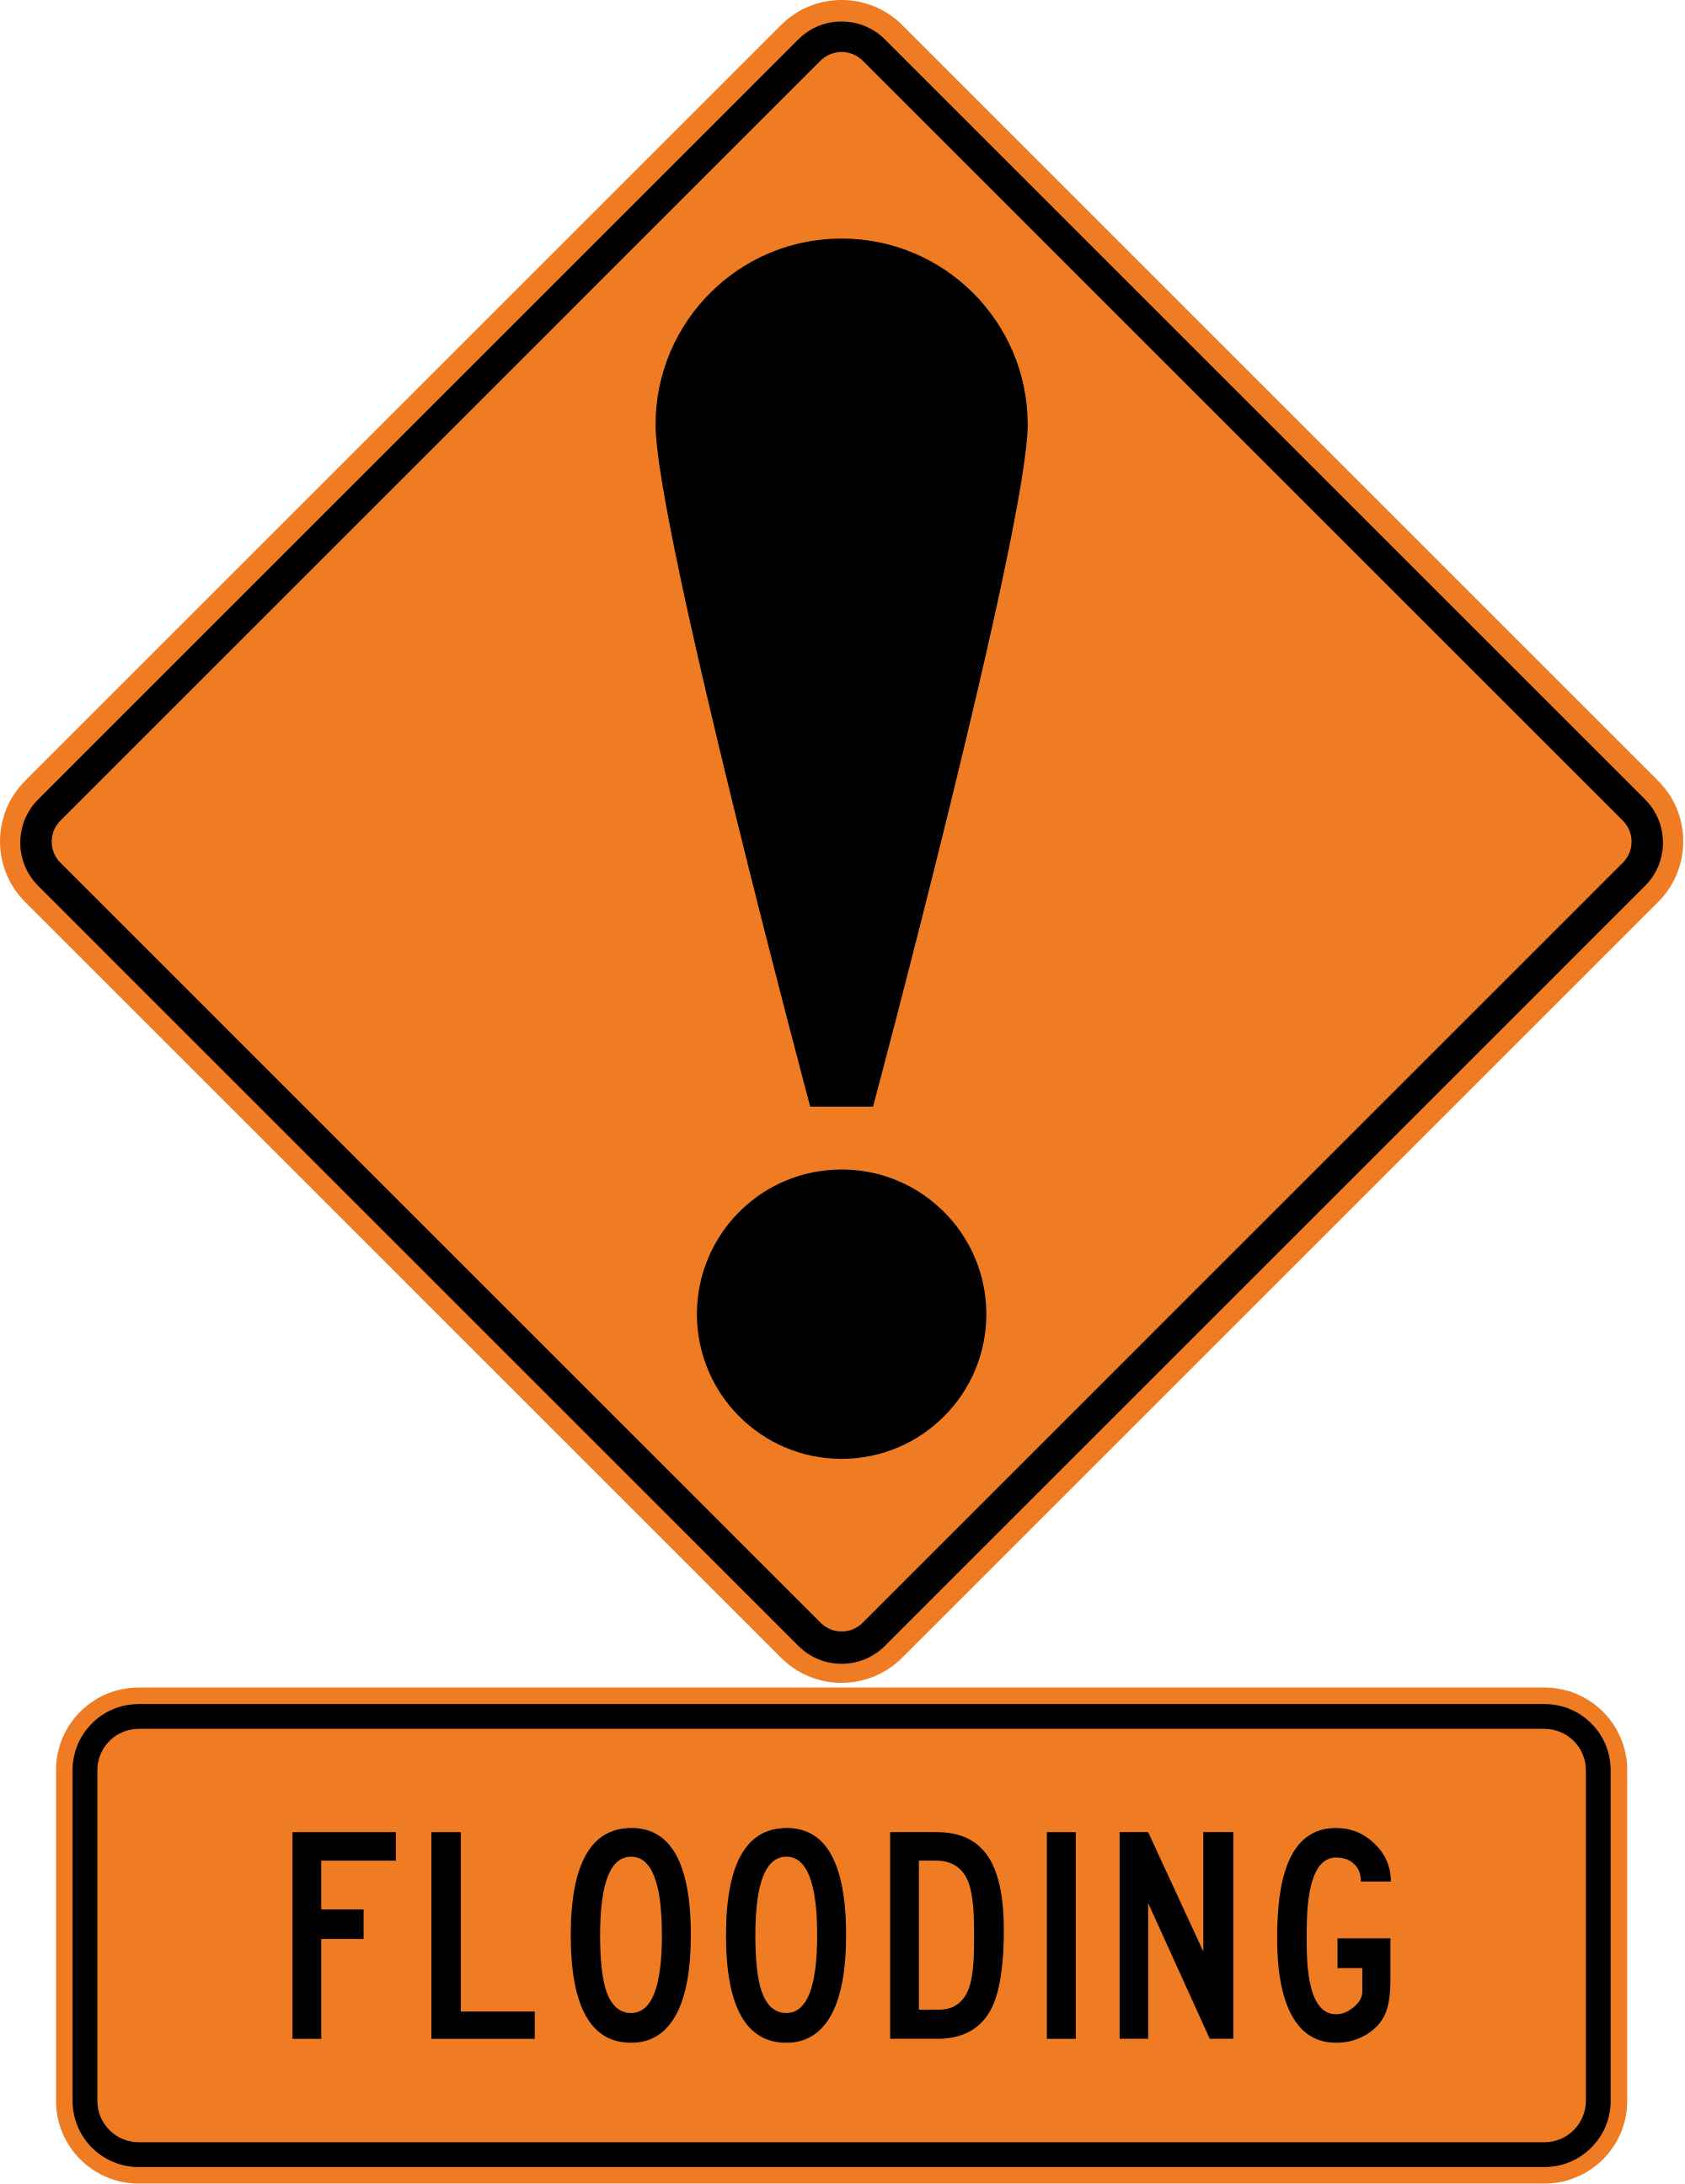 Flood clipart flooded street. Storms cause closures throughout